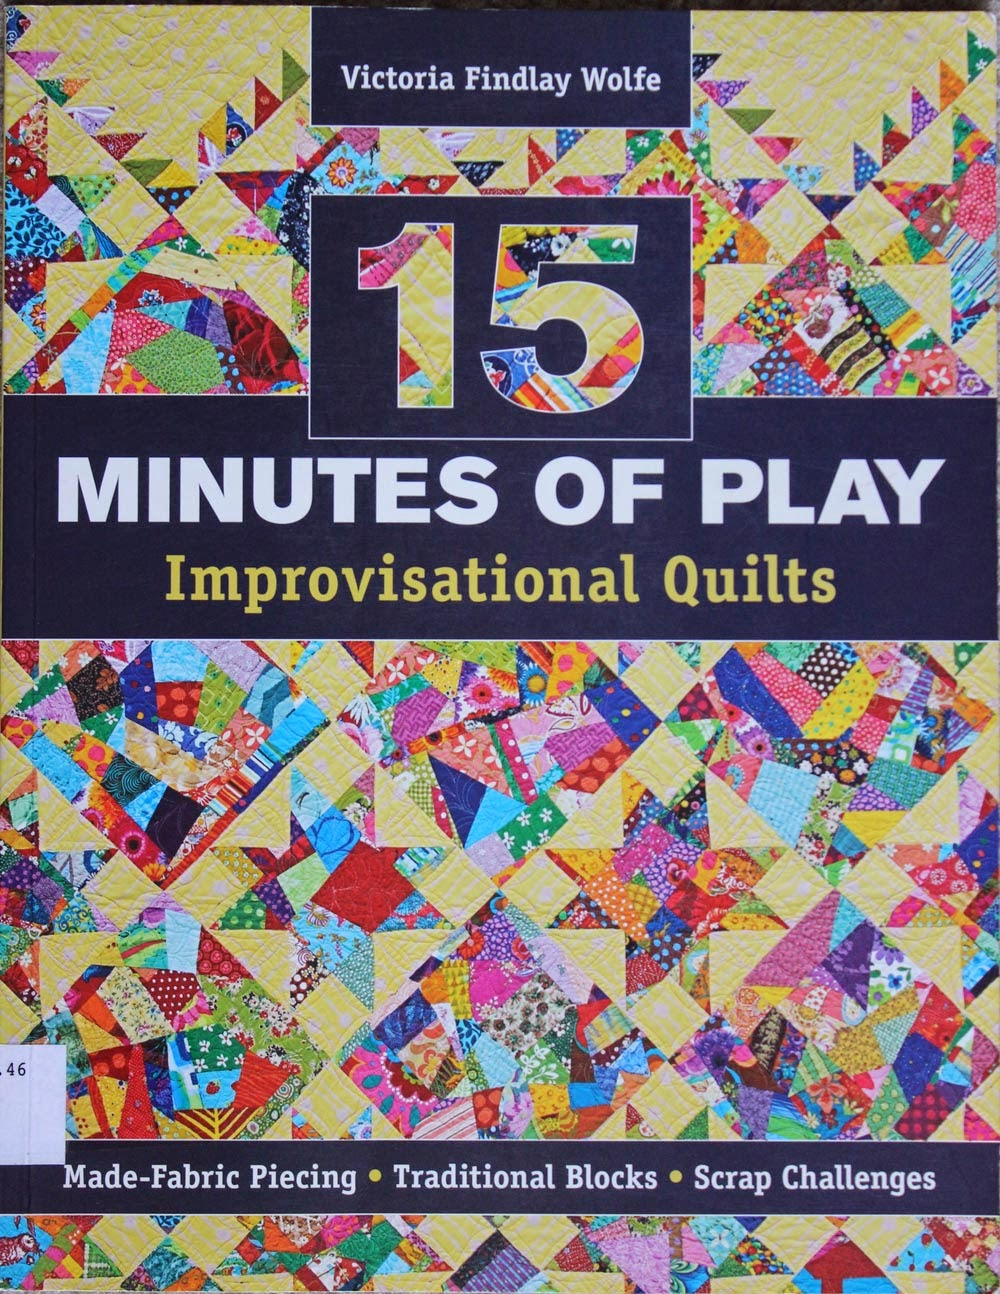 http://www.amazon.com/minutes-Play-Improvisational-Quilts-Made-Fabric/dp/1607055864/ref=as_li_qf_sp_asin_til?tag=quiltfab-20&linkCode=w00&creativeASIN=1607055864